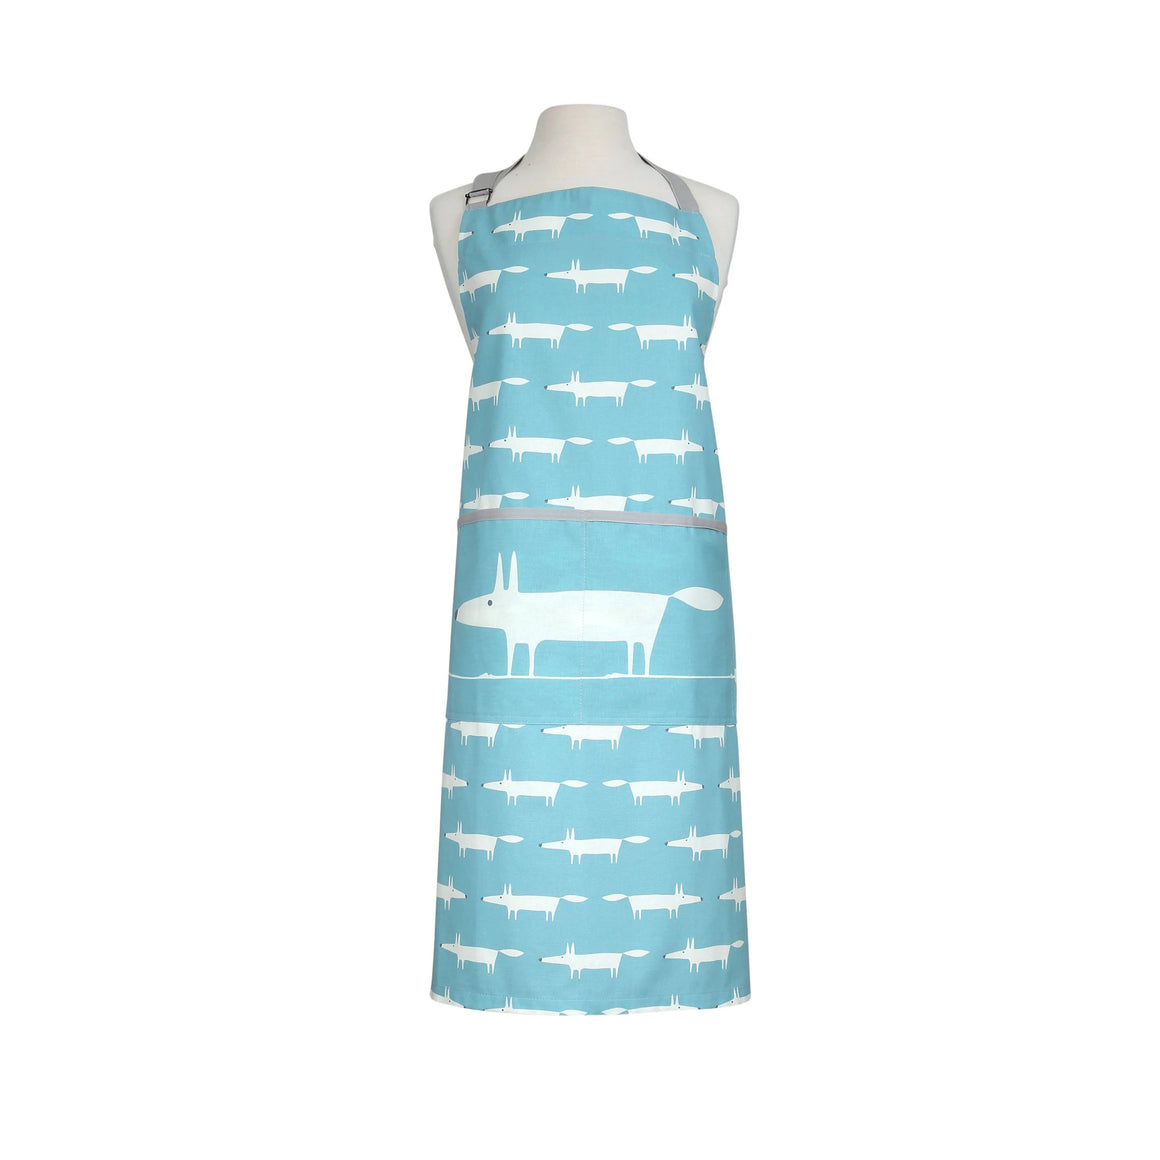 Scion Mr Fox Teal Apron